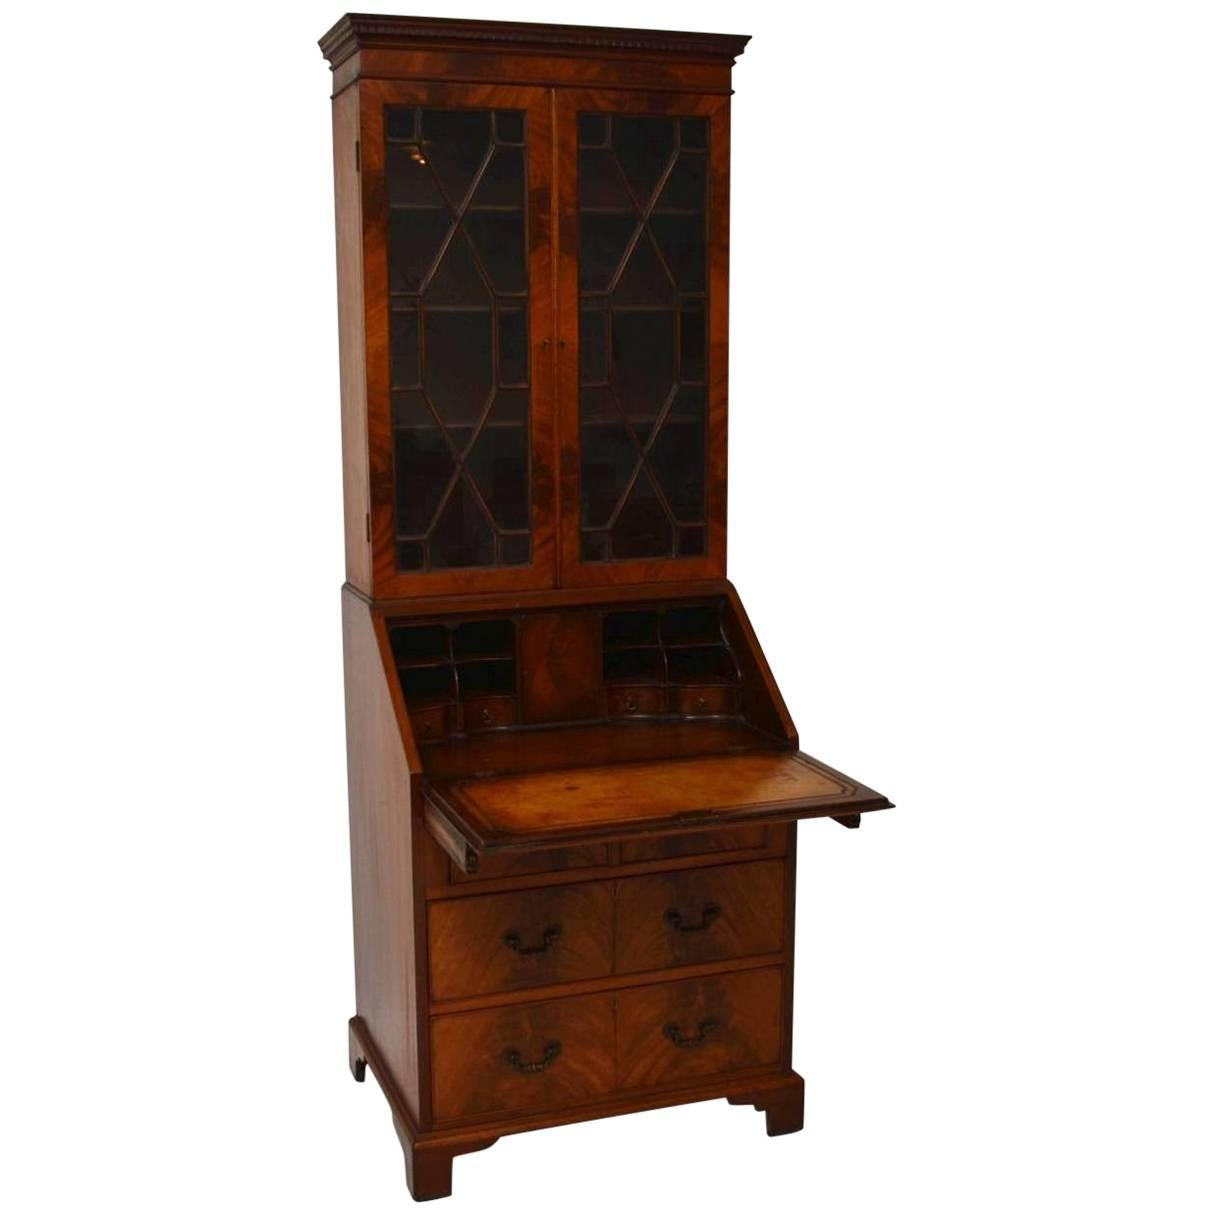 Antique and Vintage Bookcases 3018 For Sale at 1stdibs